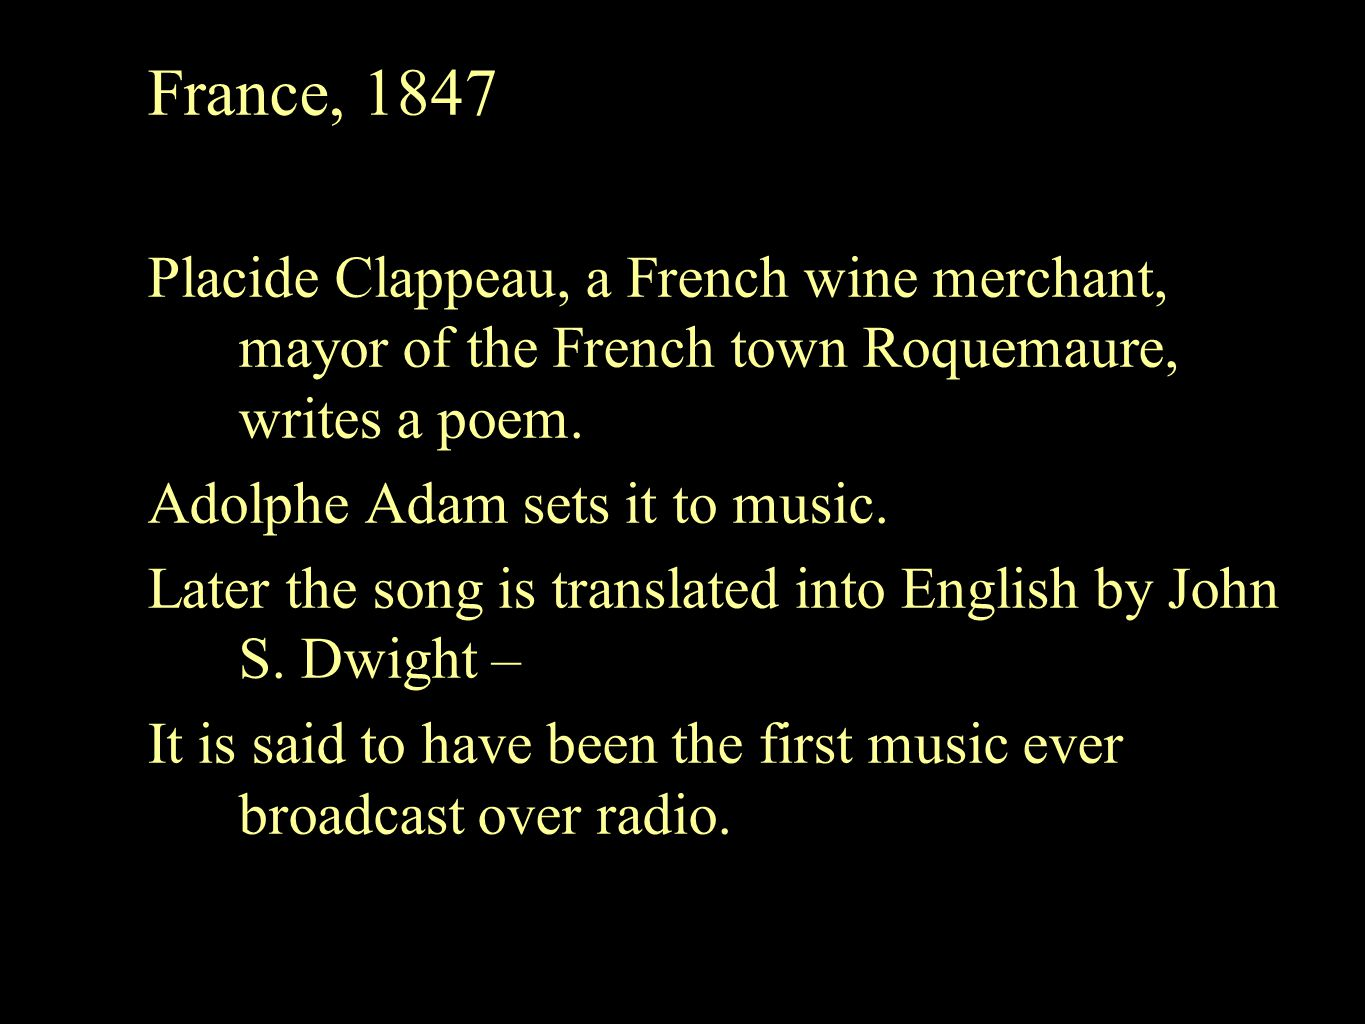 France, 1847 Placide Clappeau, a French wine merchant, mayor of the French town Roquemaure, writes a poem.